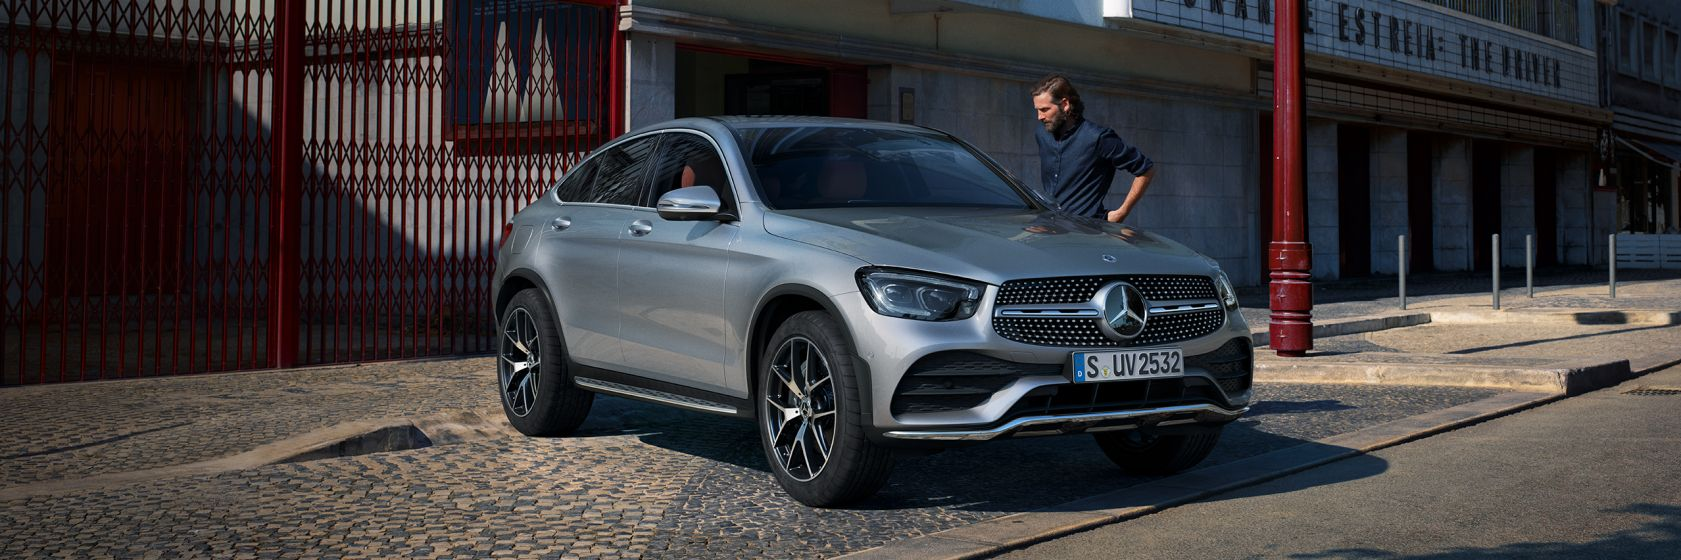 GLC Coupe 2021